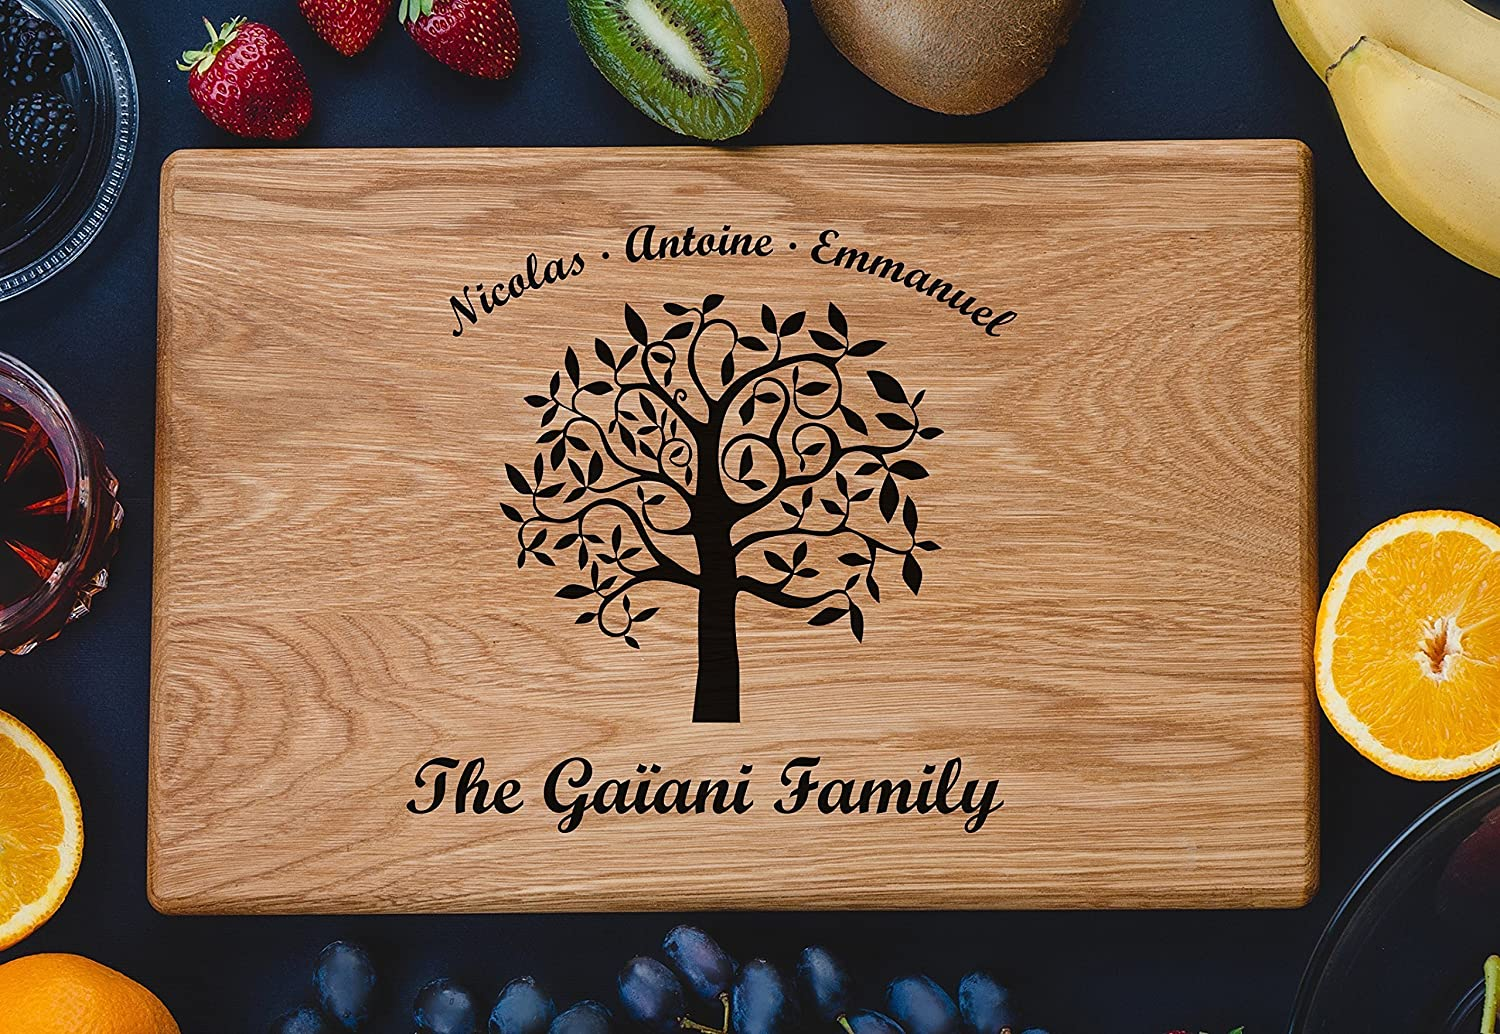 Family Tree Personalized Engraved Cutting Boardcustom Wedding Gift, Anniversary Gifts, Housewarming Gift, Birthday custom08